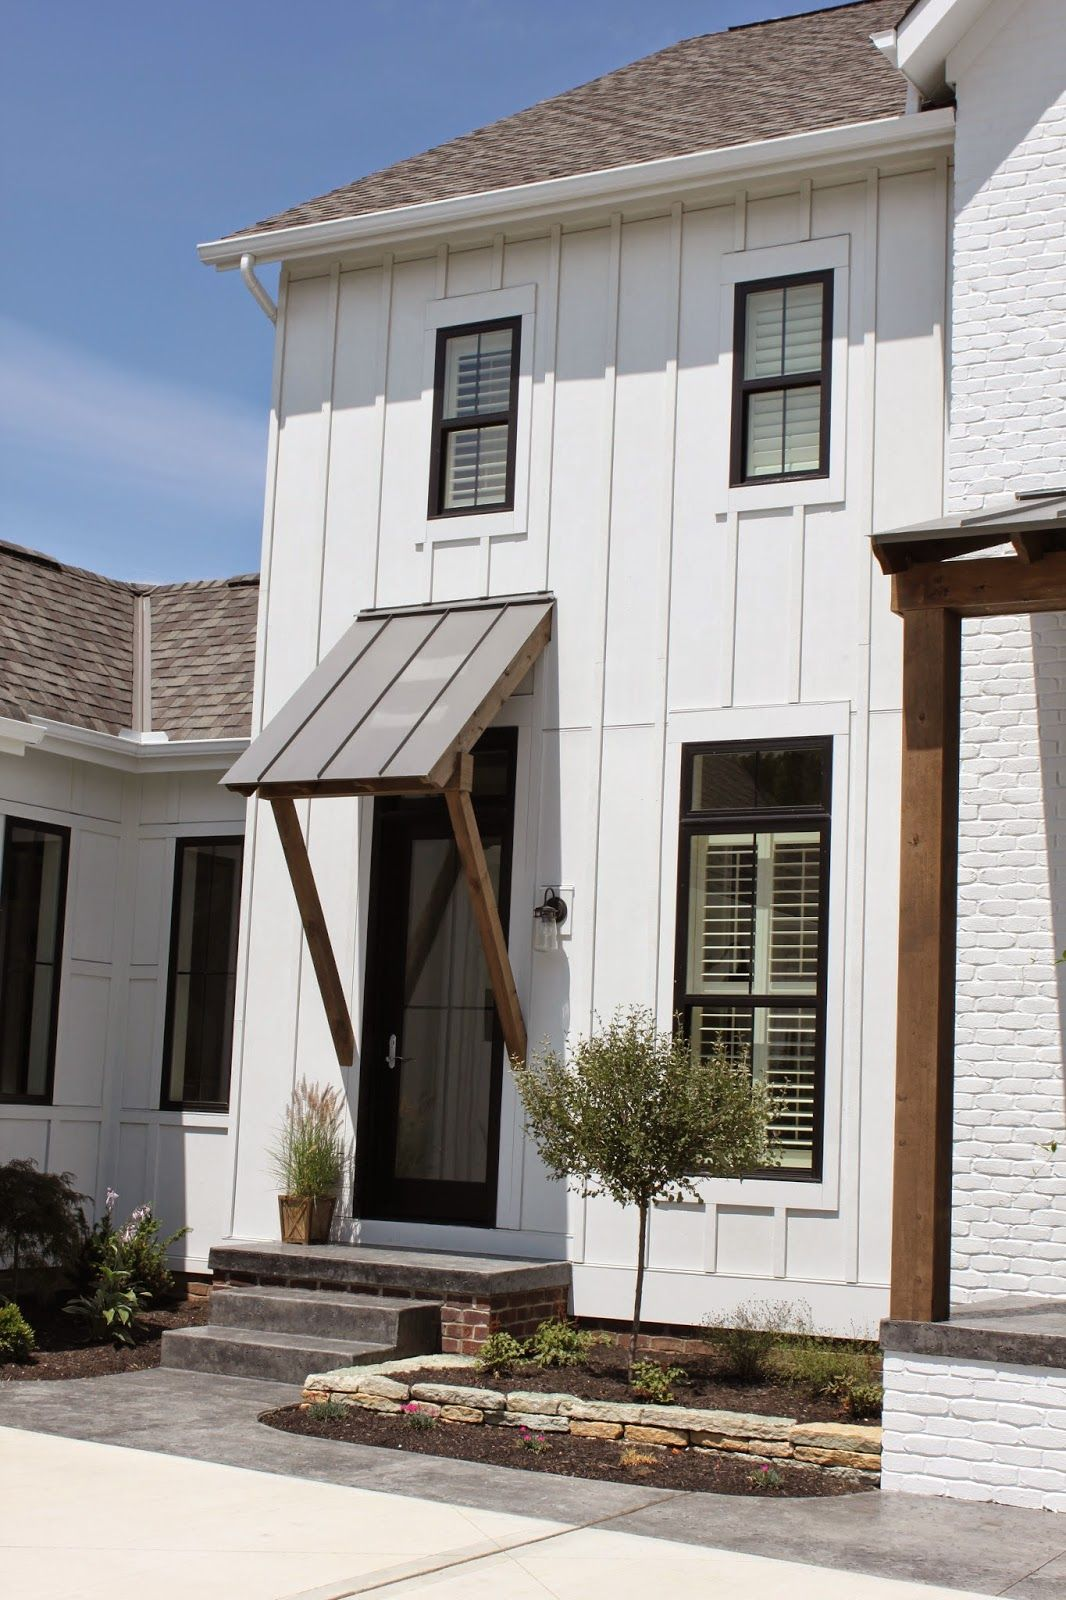 Farmhouse Exterior Colors With Metal Roof The Fat Hydrangea Parade Of Homes Week 2014 House 3